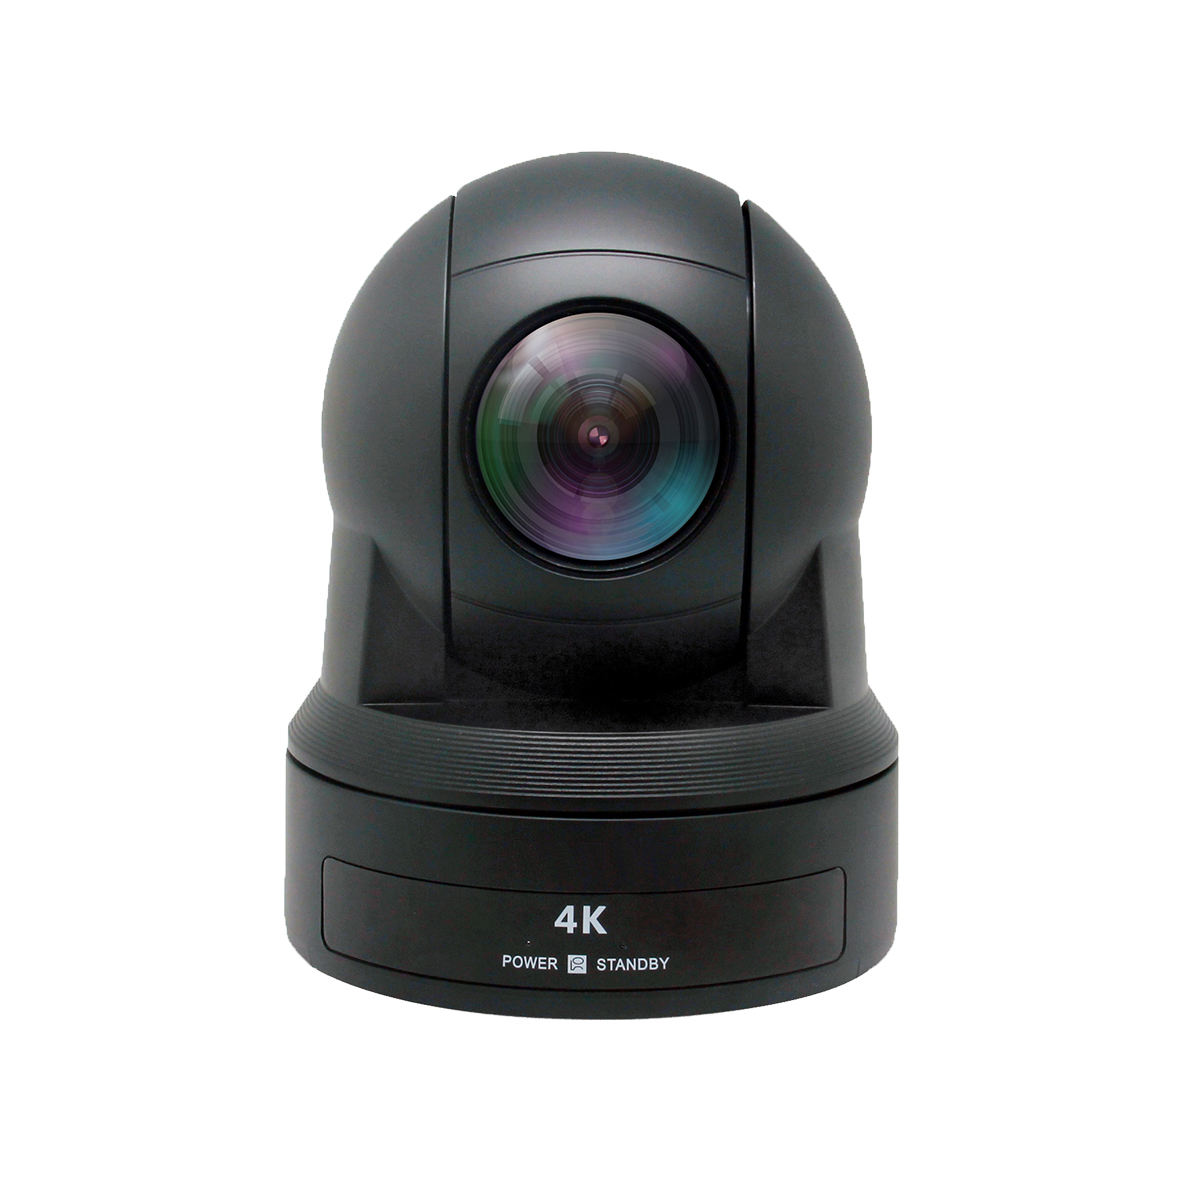 Factory newest ultra 4k PTZ video conference camera 12x zoom HDMI 8.5MP for IP live streaming broadcasting system